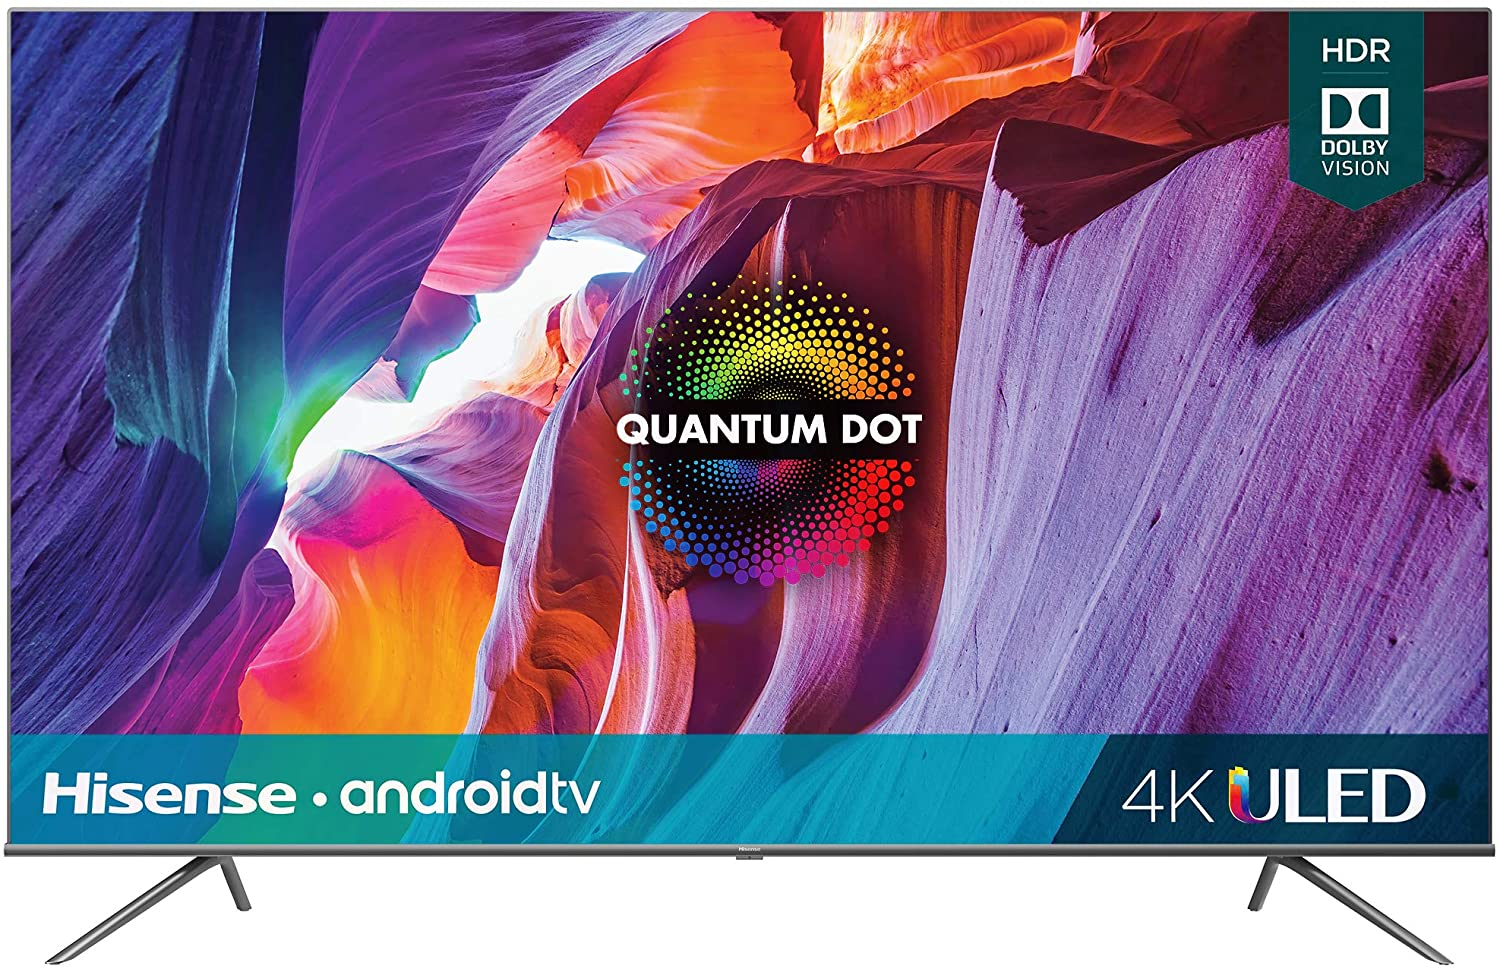 Hisense 75H8G 75″ 4K Quantum Series Android 4K ULED Smart TV with Voice Remote